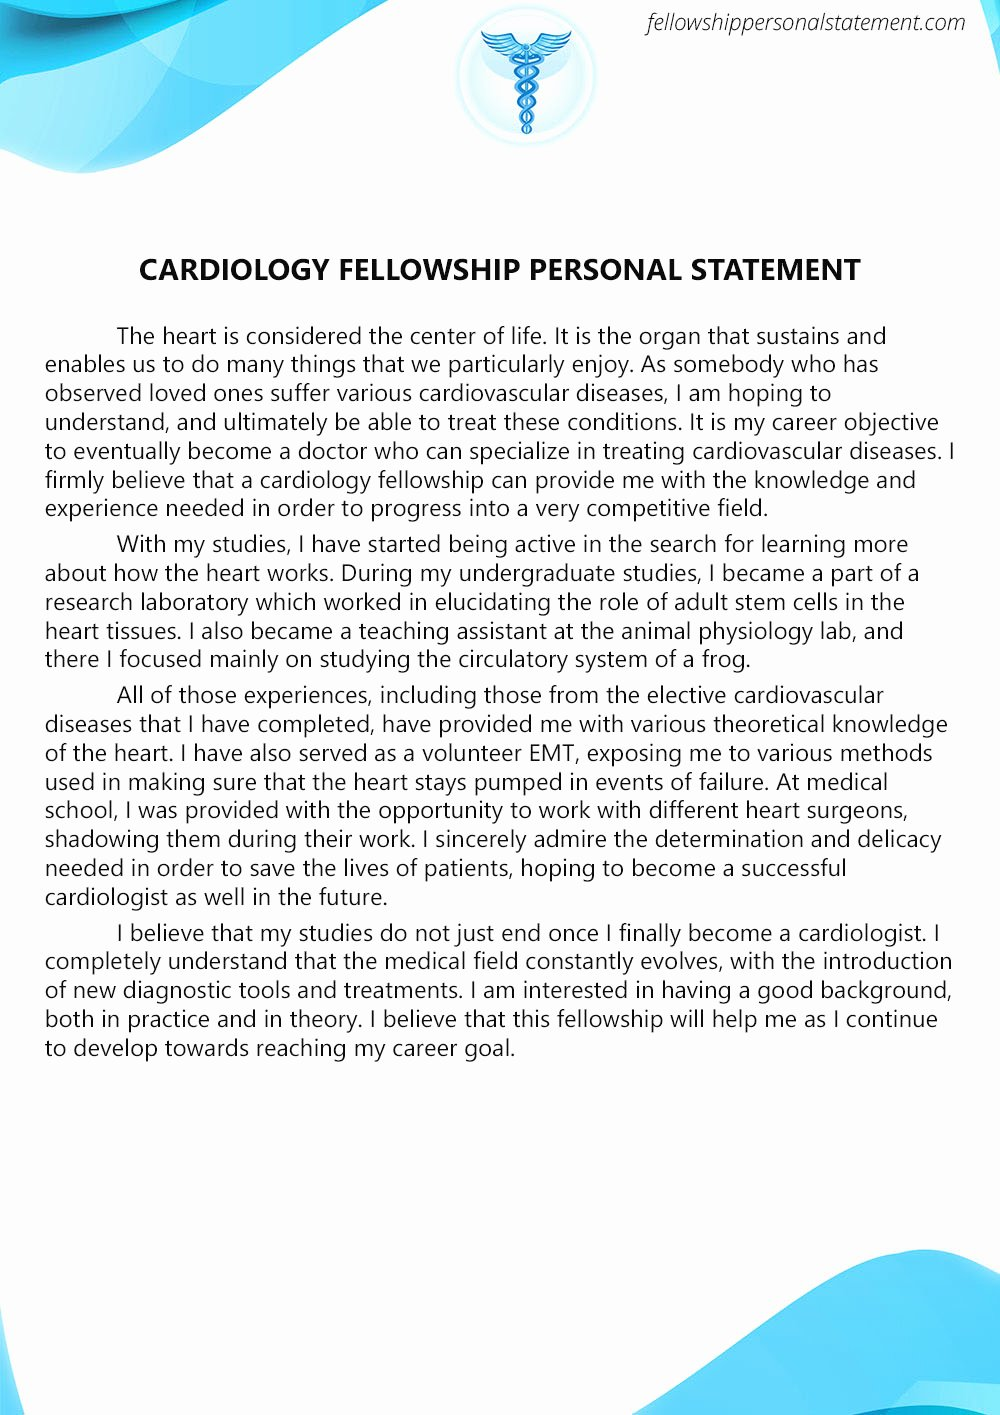 Personal Statement for Fellowship Sample Fresh Exceptional Cardiology Fellowship Personal Statement Writing